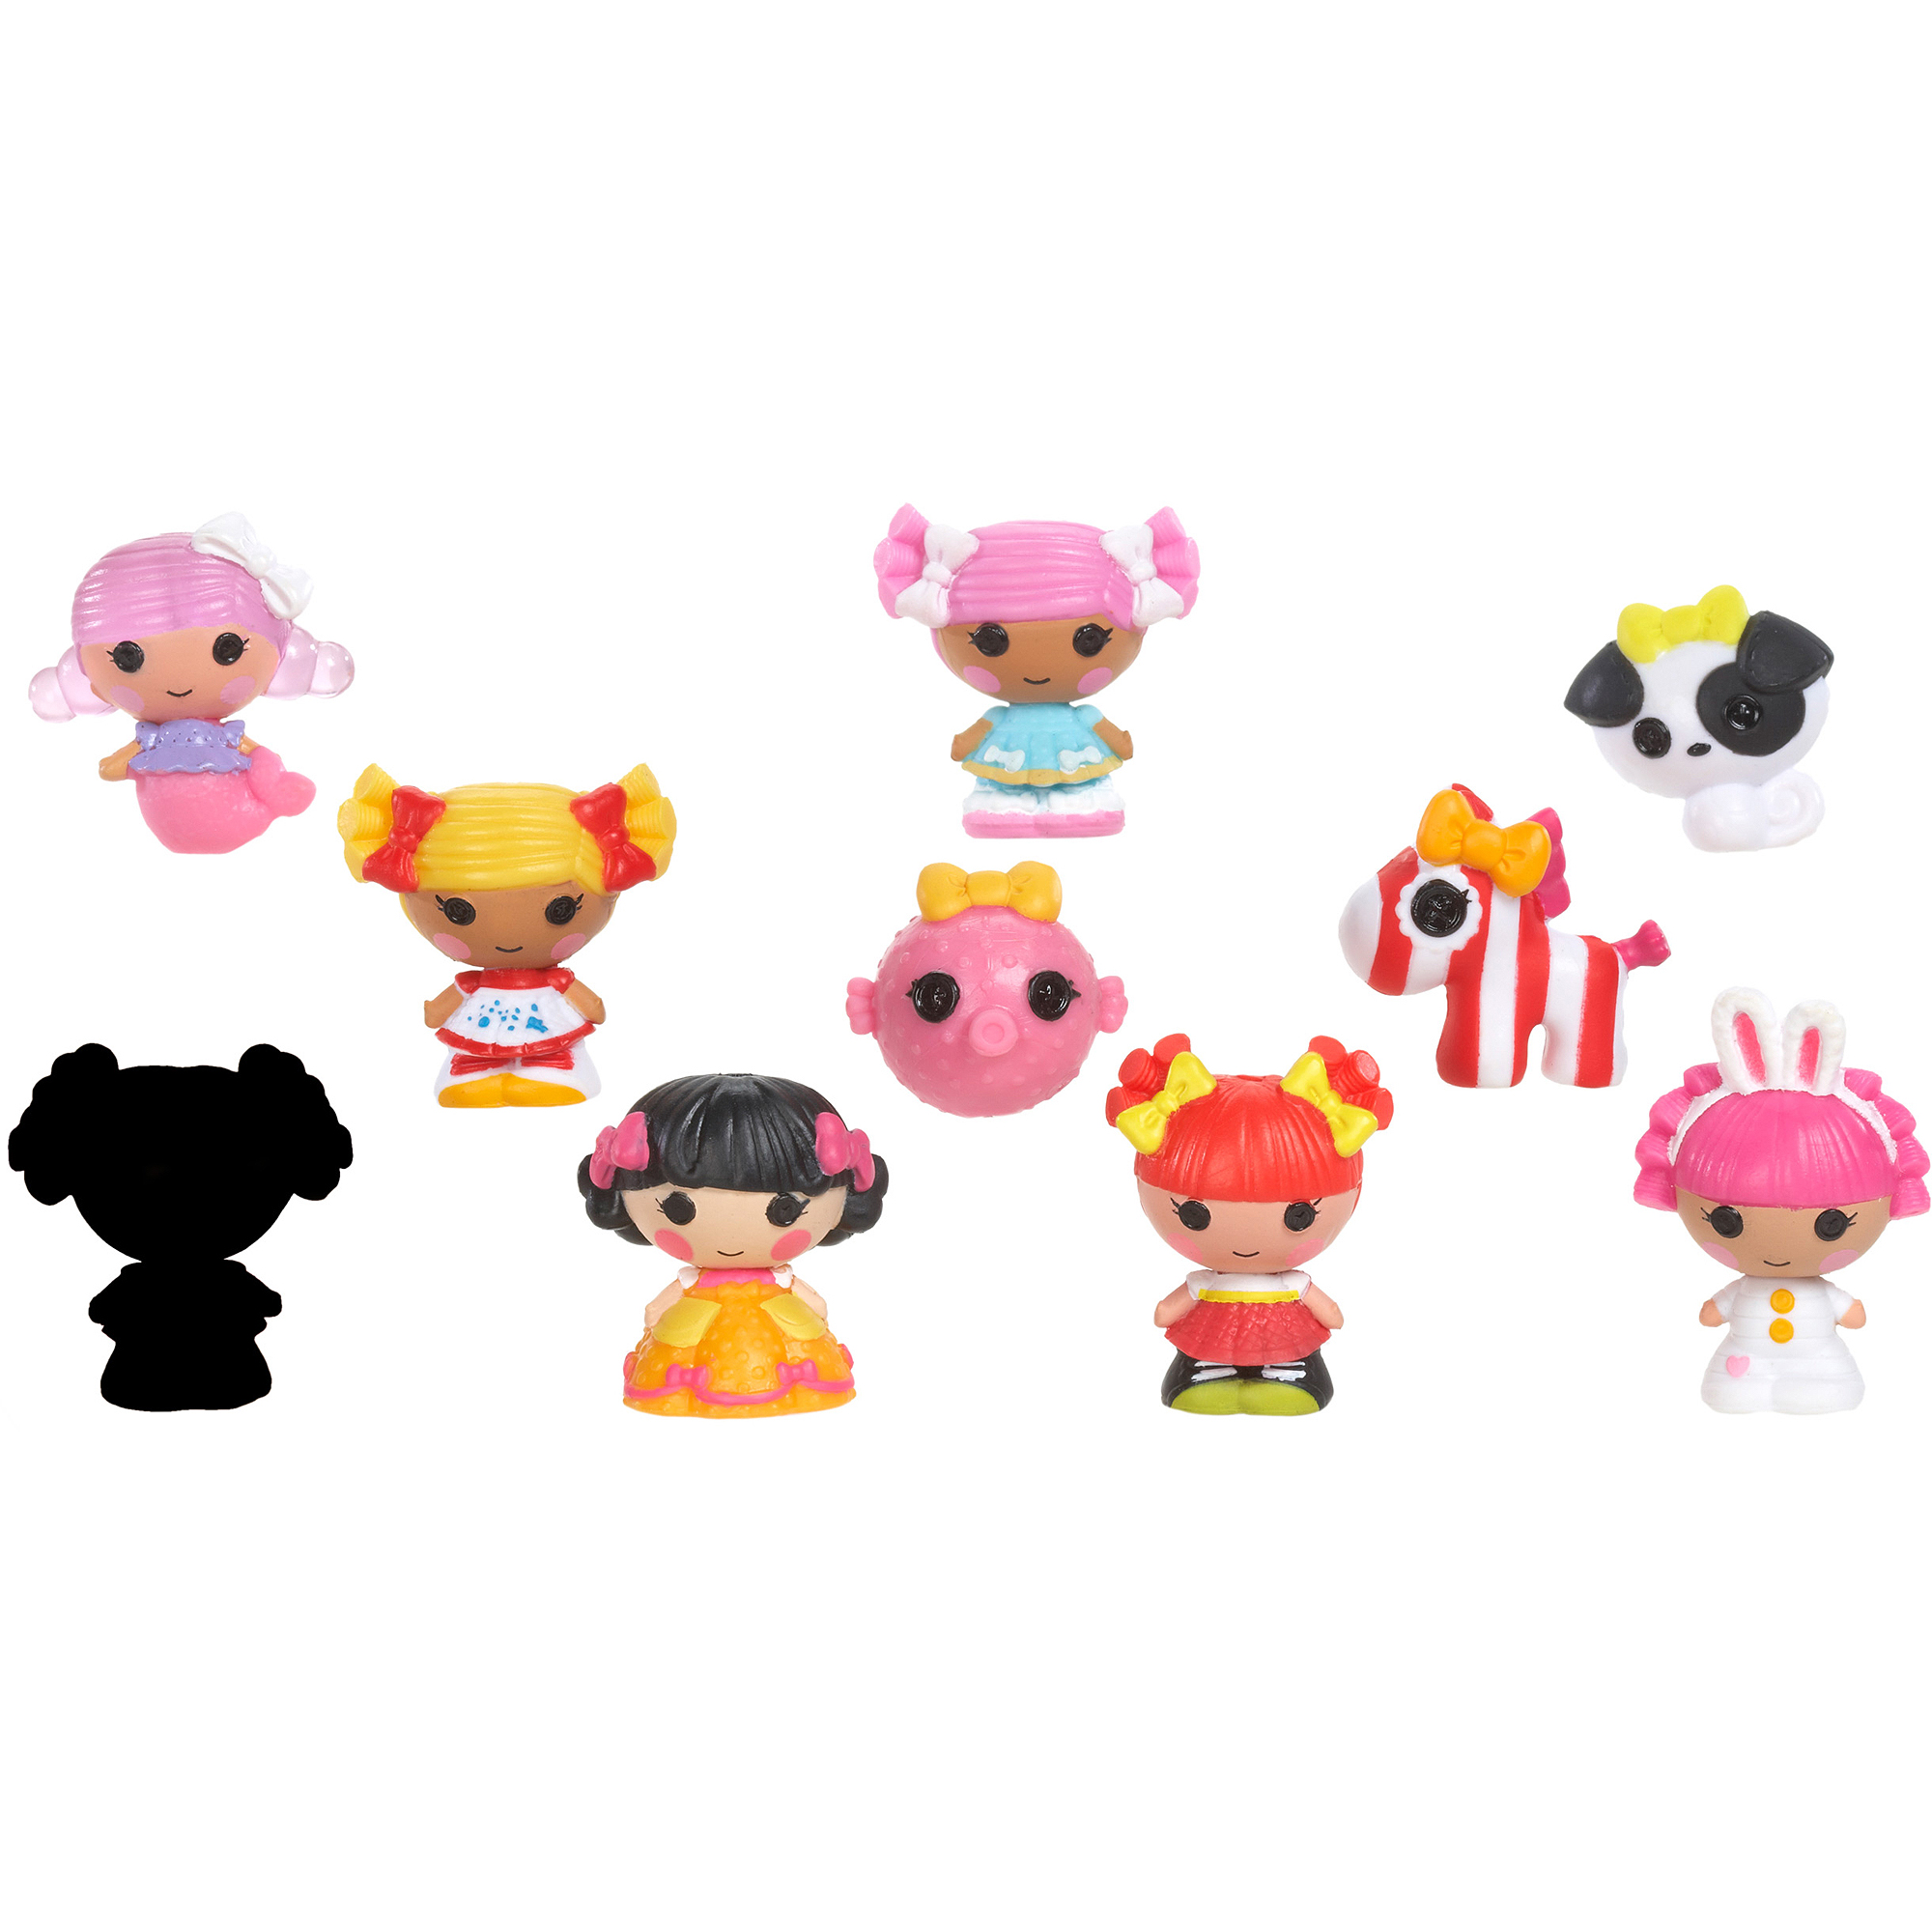 Lalaloopsy Tinies 10-Pack, Style 1